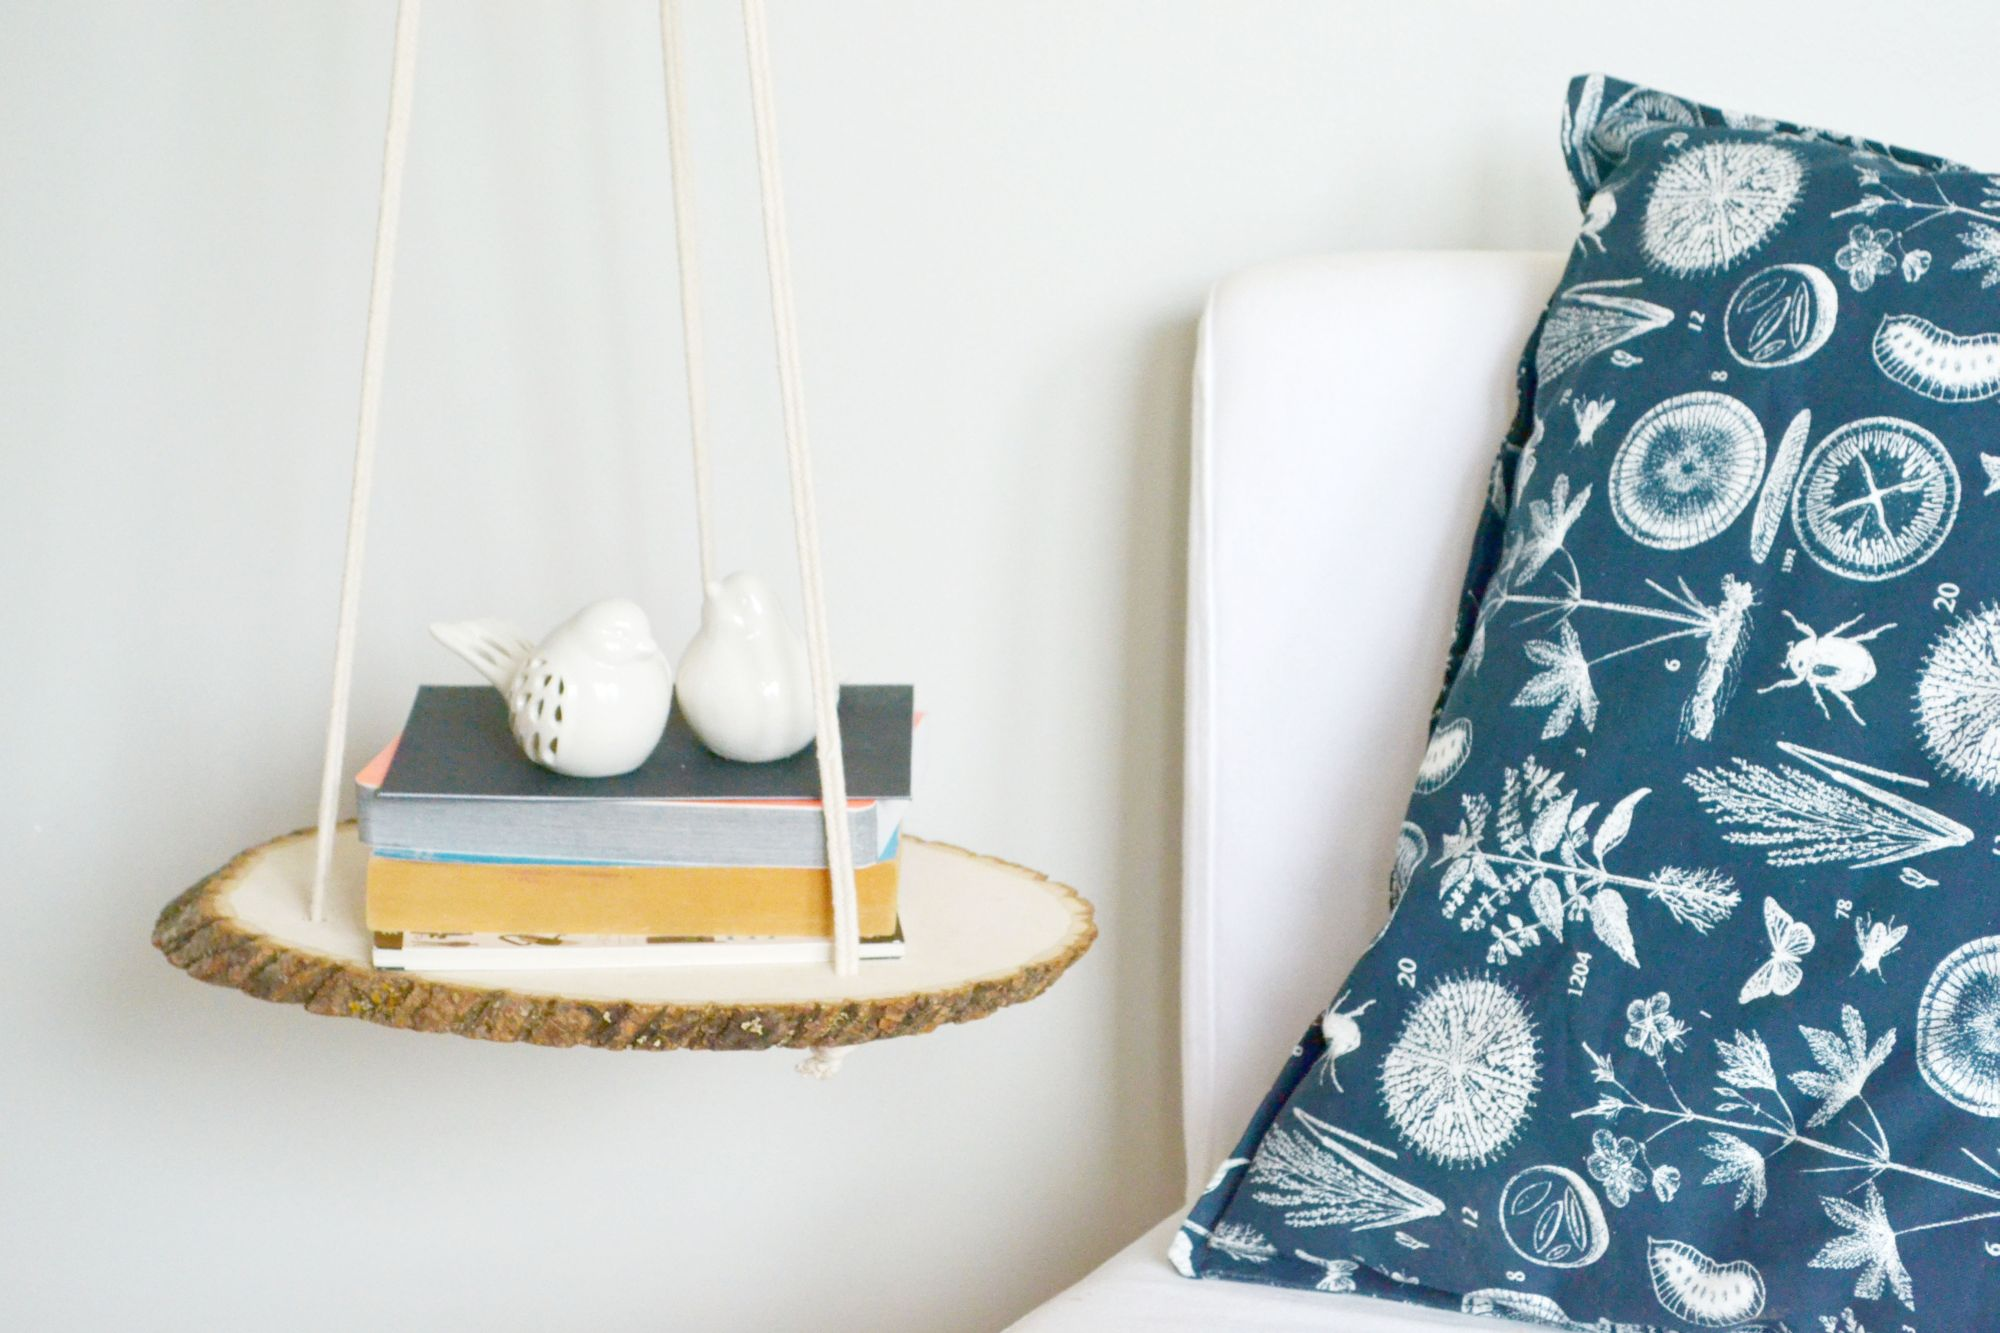 DIY A Hanging Wood Shelf